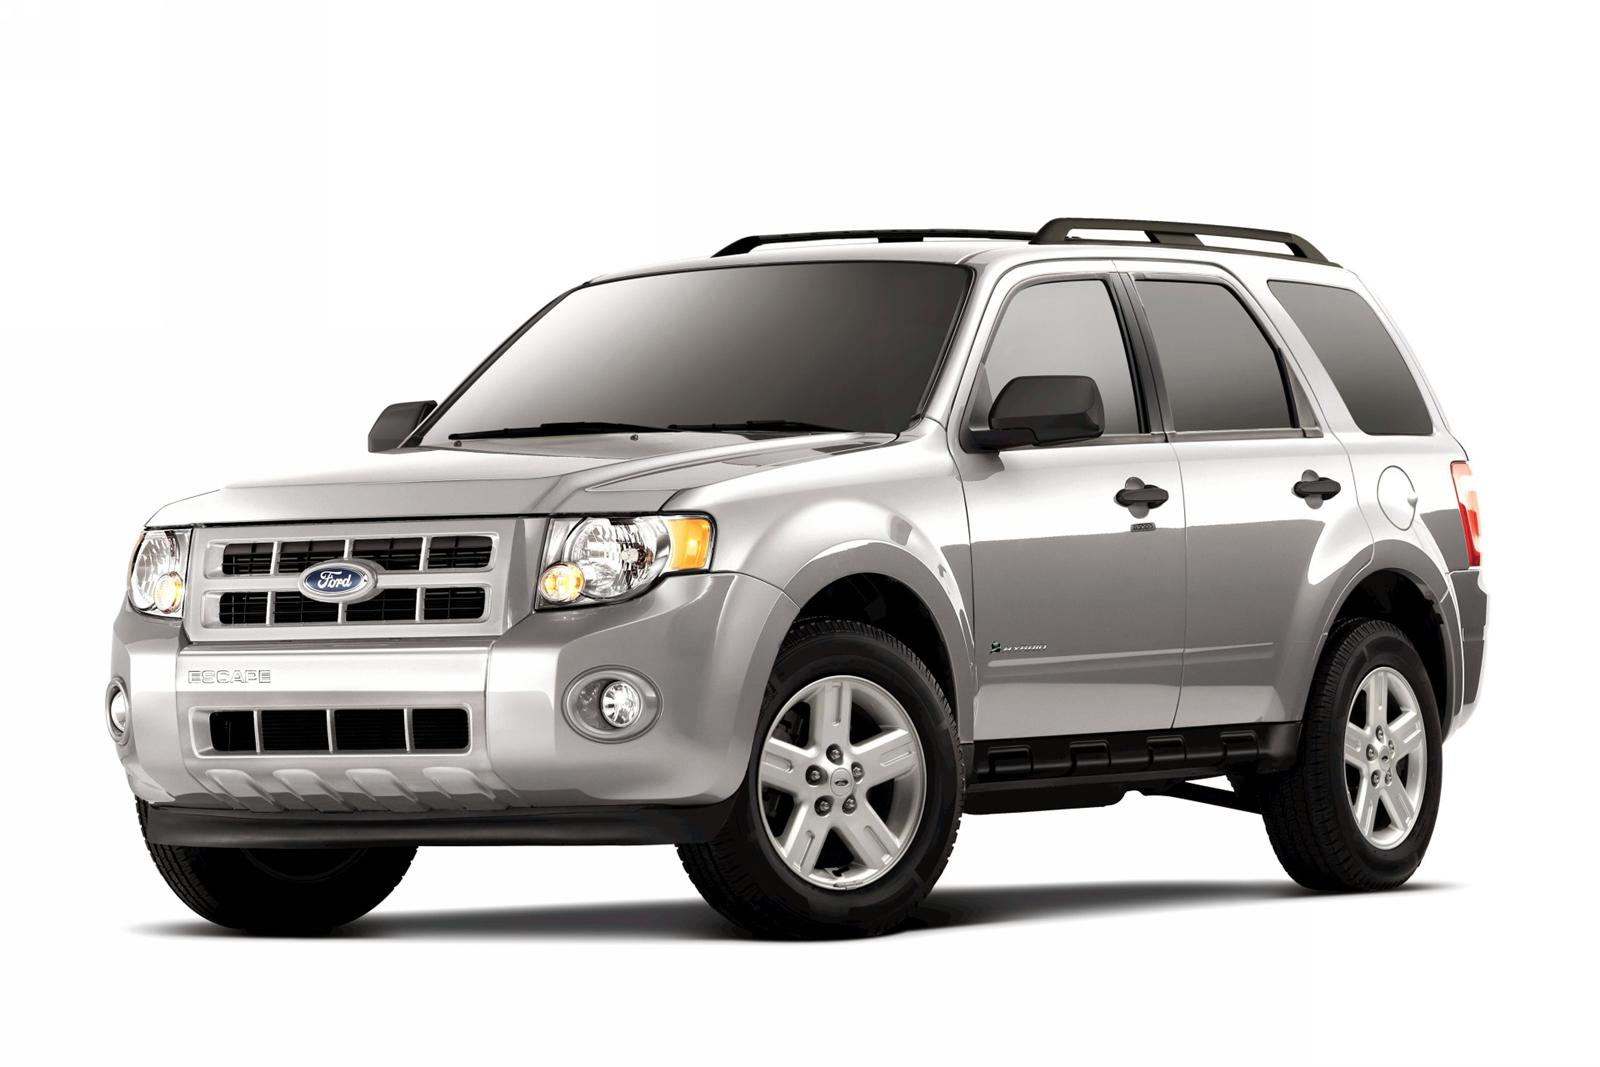 2010 ford escape hybrid limited suv. Black Bedroom Furniture Sets. Home Design Ideas